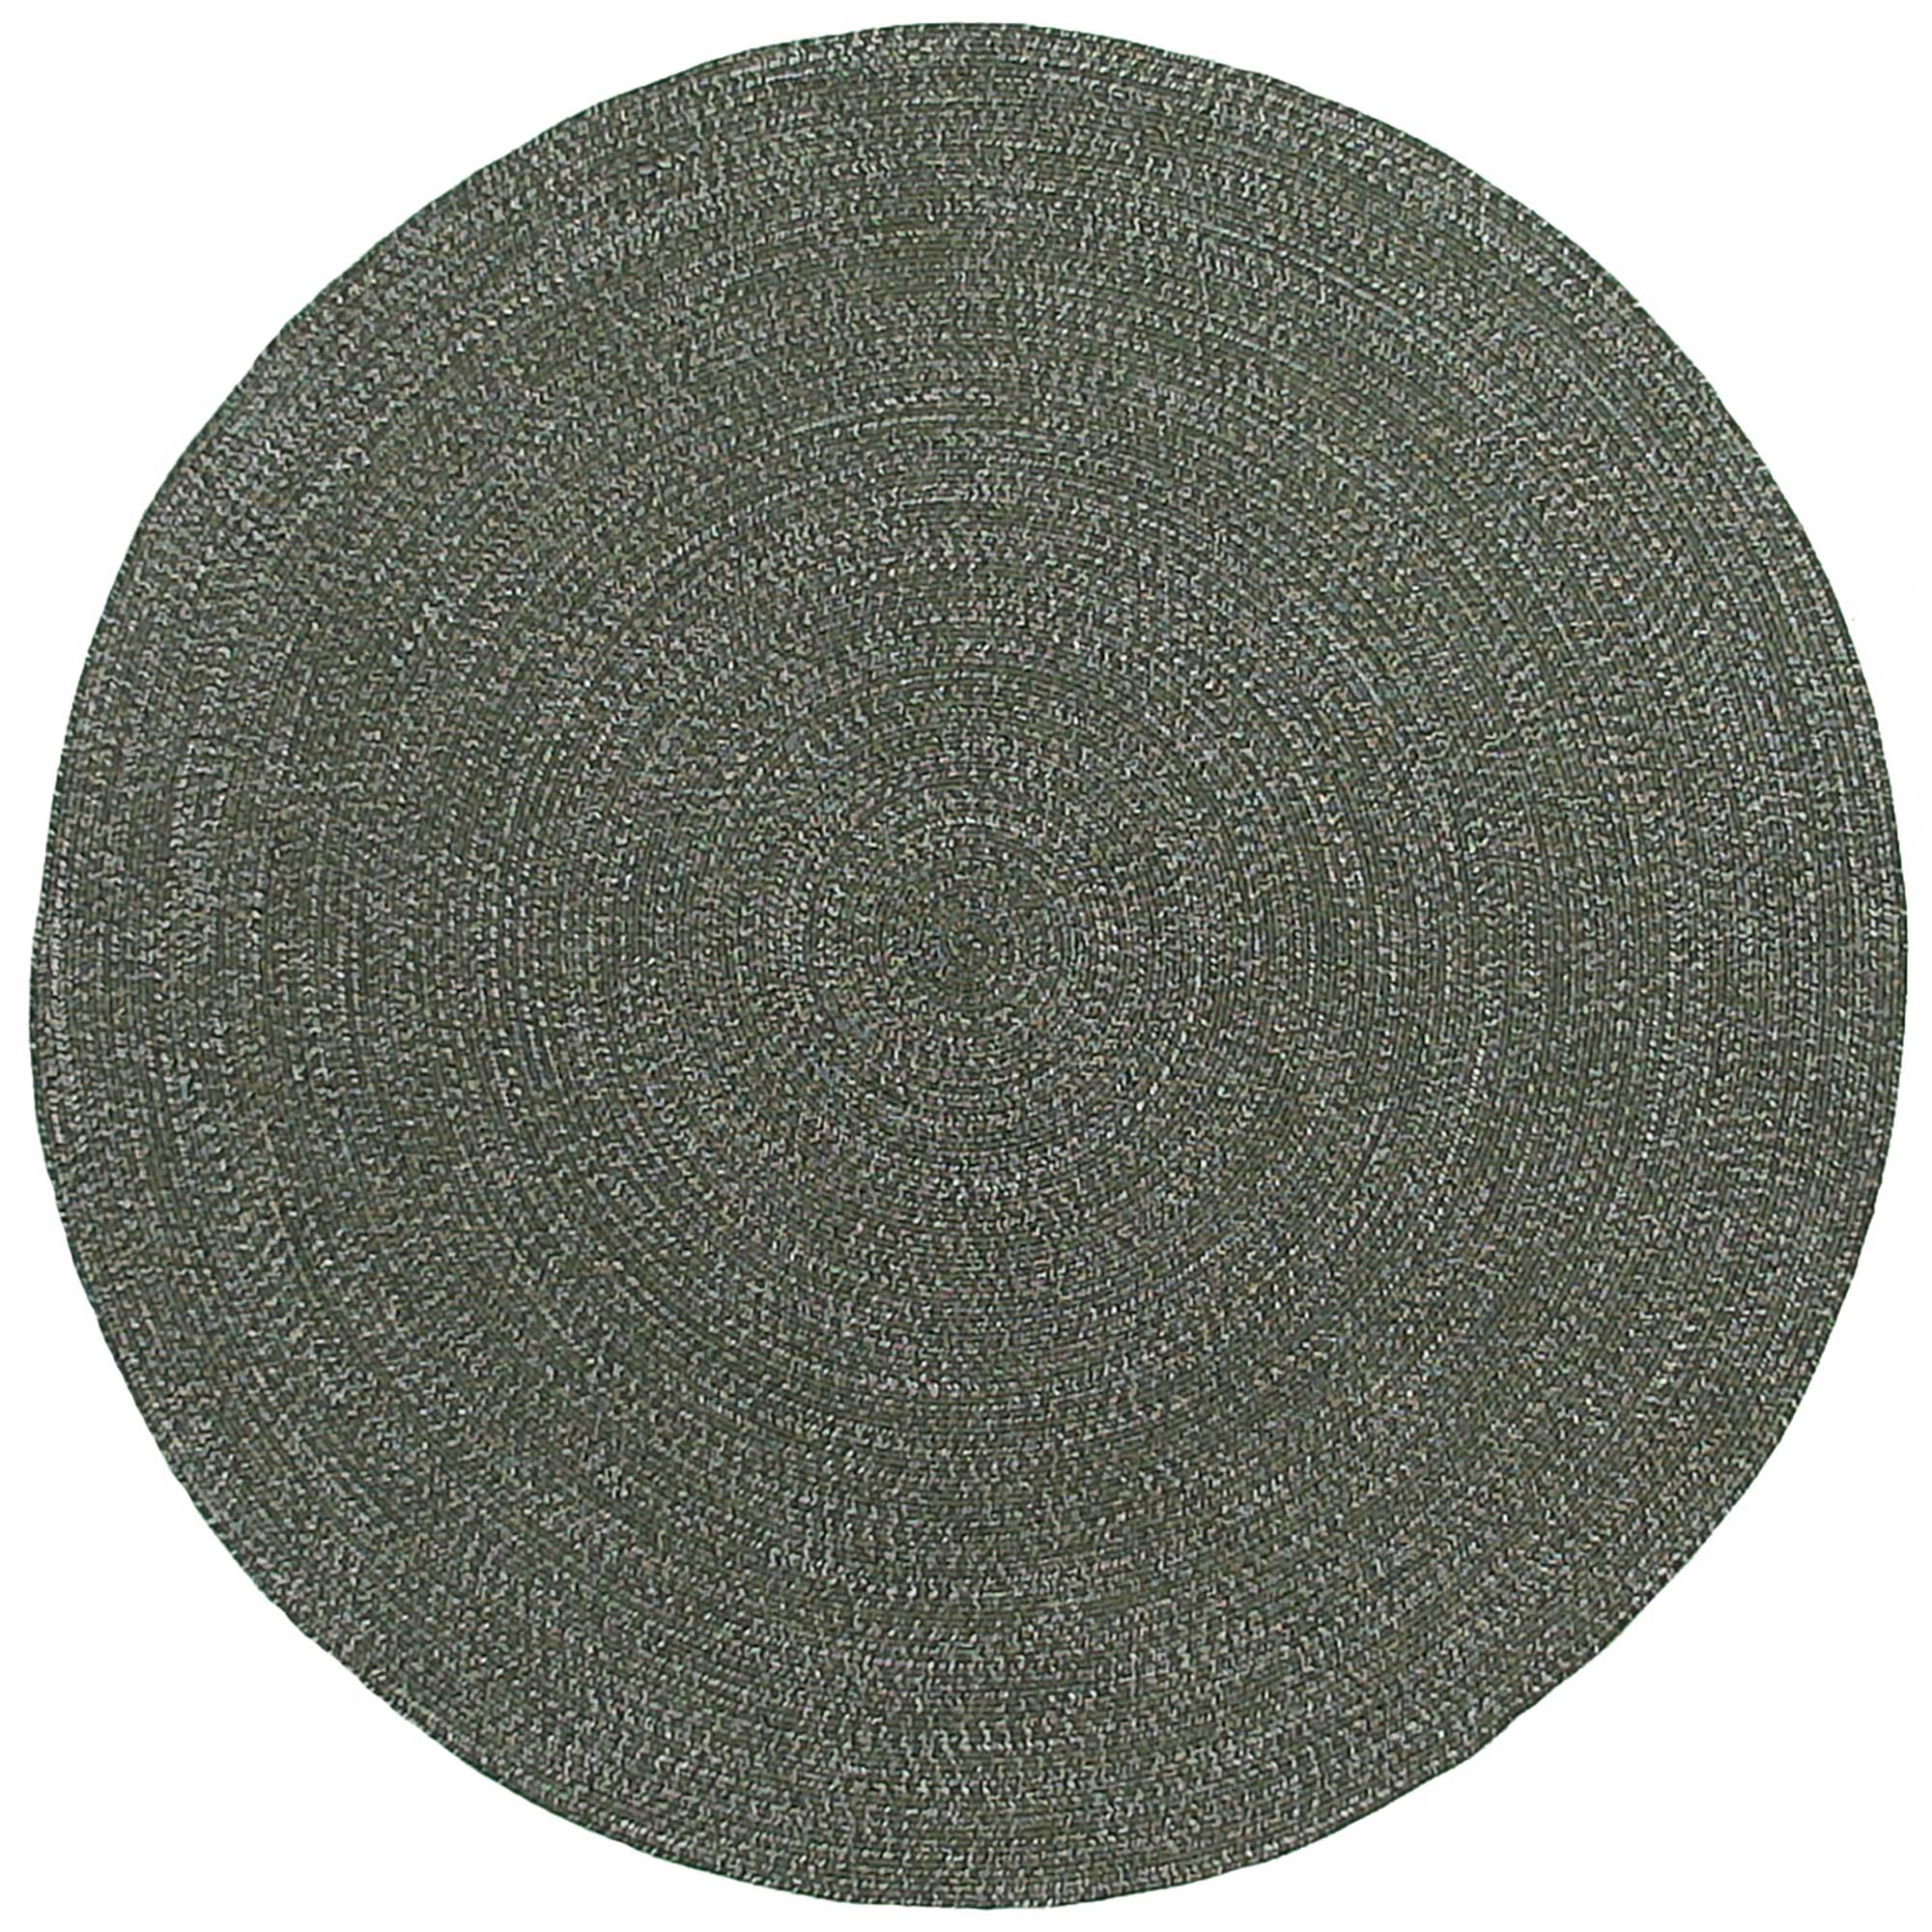 Seasons_Round_Khaki-wide